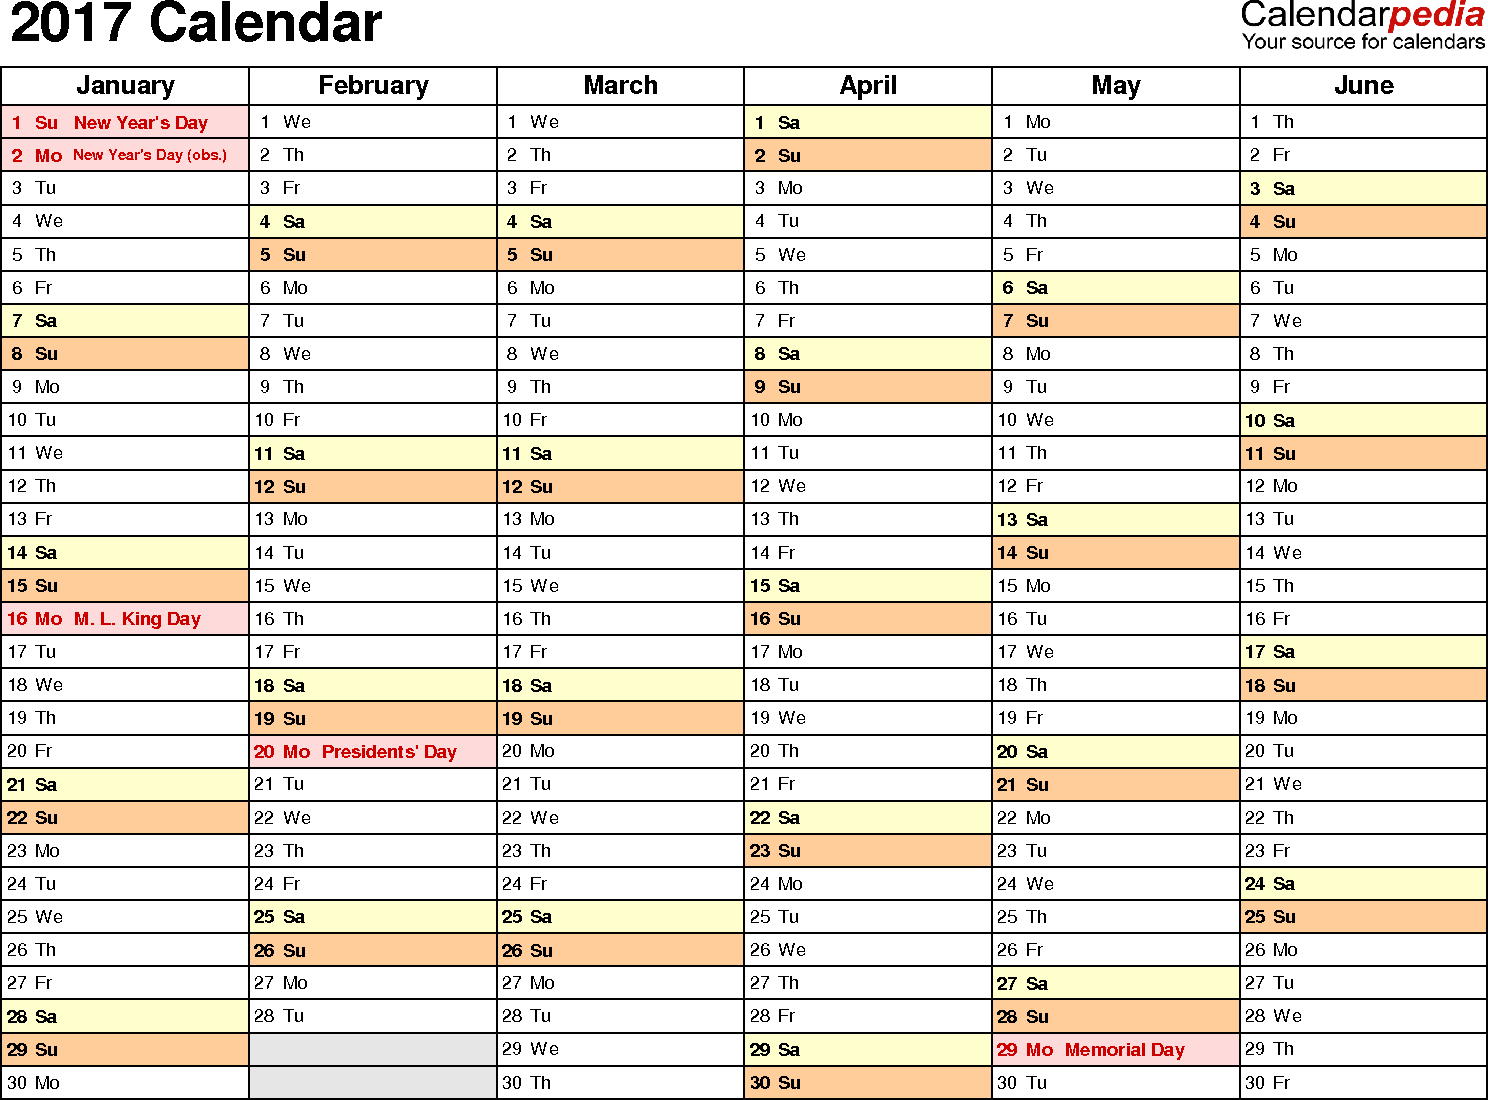 Ediblewildsus  Pleasant  Calendar  Download  Free Printable Excel Templates Xls With Inspiring Template   Calendar For Excel Months Horizontally  Pages Landscape Orientation With Nice How To Compare Two Spreadsheets In Excel Also Range Name In Excel In Addition Excel R And Paste Image Into Excel Cell As Well As Bookkeeping Excel Additionally Kalman Filter Excel From Calendarpediacom With Ediblewildsus  Inspiring  Calendar  Download  Free Printable Excel Templates Xls With Nice Template   Calendar For Excel Months Horizontally  Pages Landscape Orientation And Pleasant How To Compare Two Spreadsheets In Excel Also Range Name In Excel In Addition Excel R From Calendarpediacom